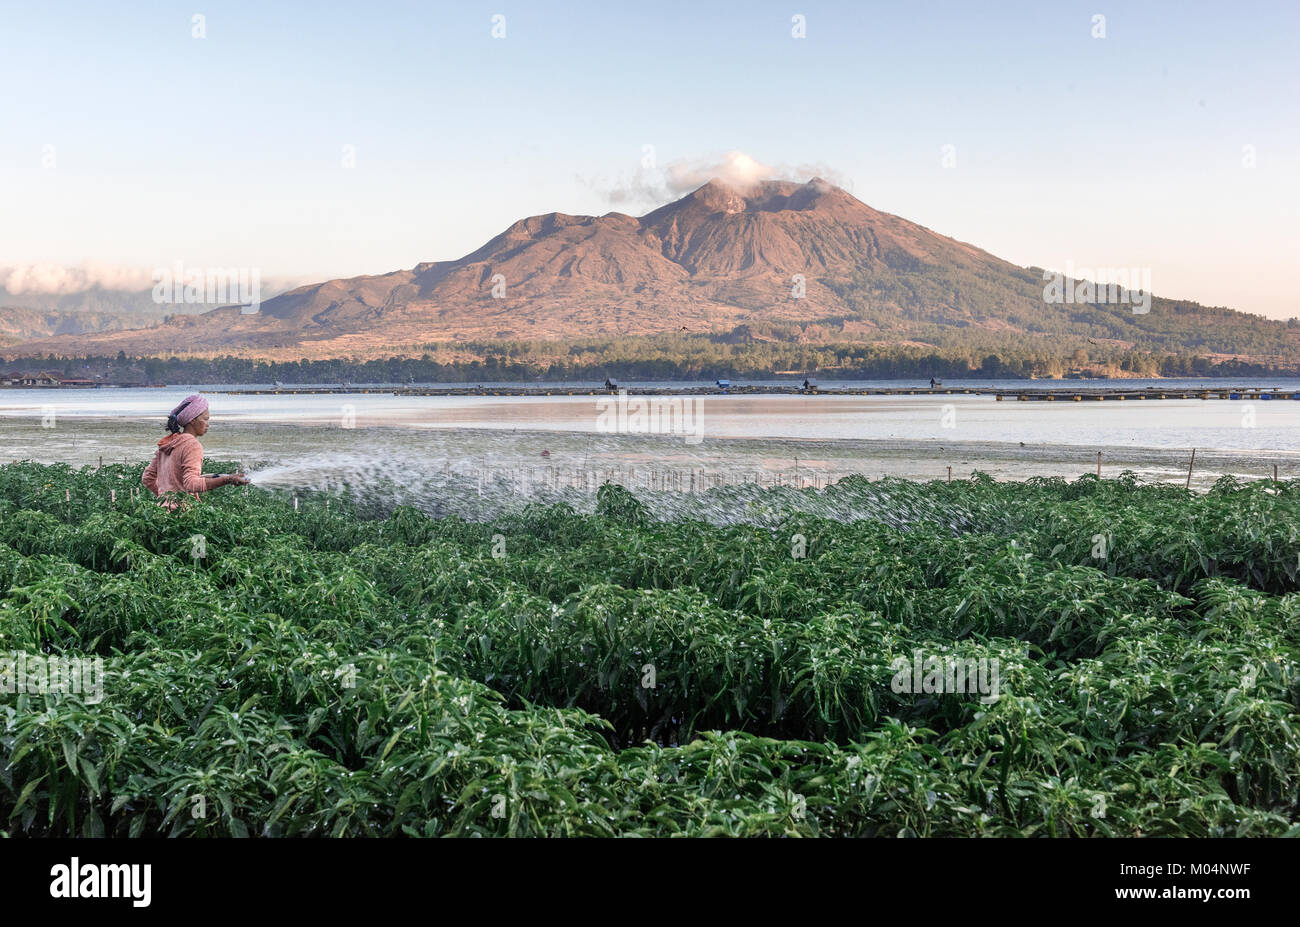 Rice Plants In Indonesia Stock Photos Amp Rice Plants In